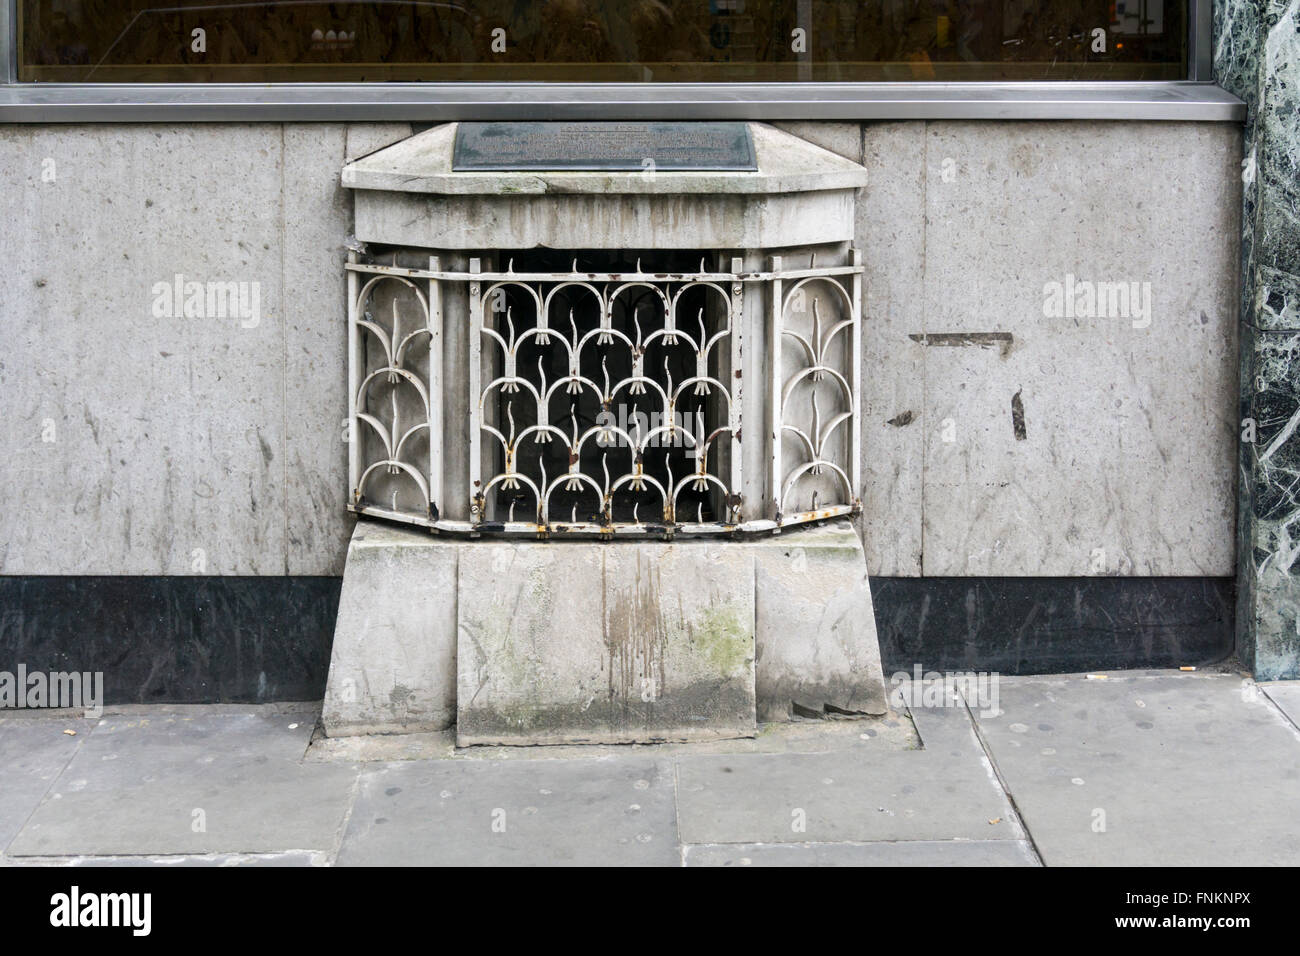 The London Stone set in the front of a building in Cannon Street.  SEE DETAILS IN DESCRIPTION. Stock Photo